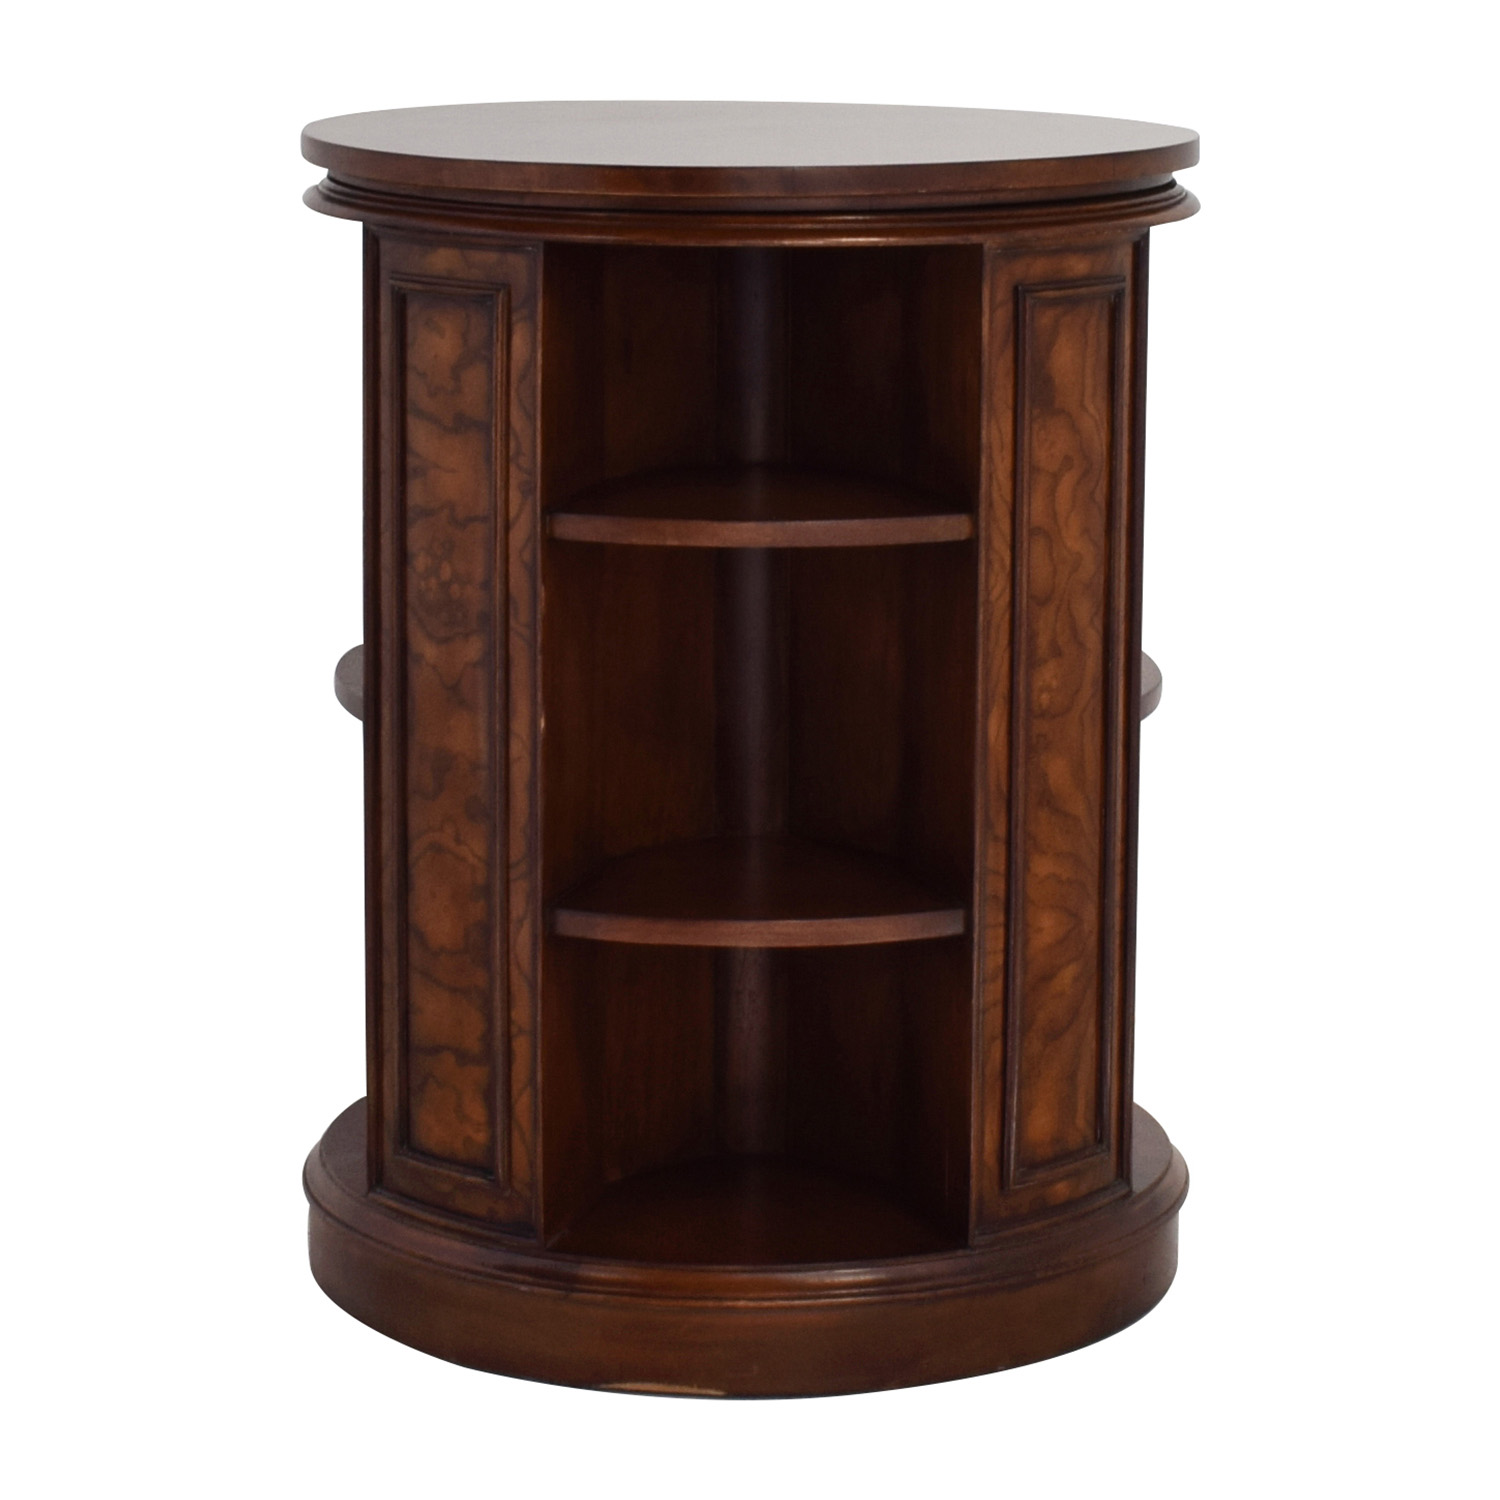 shop Safavieh Safavieh Rotating Side Table Bookcase online